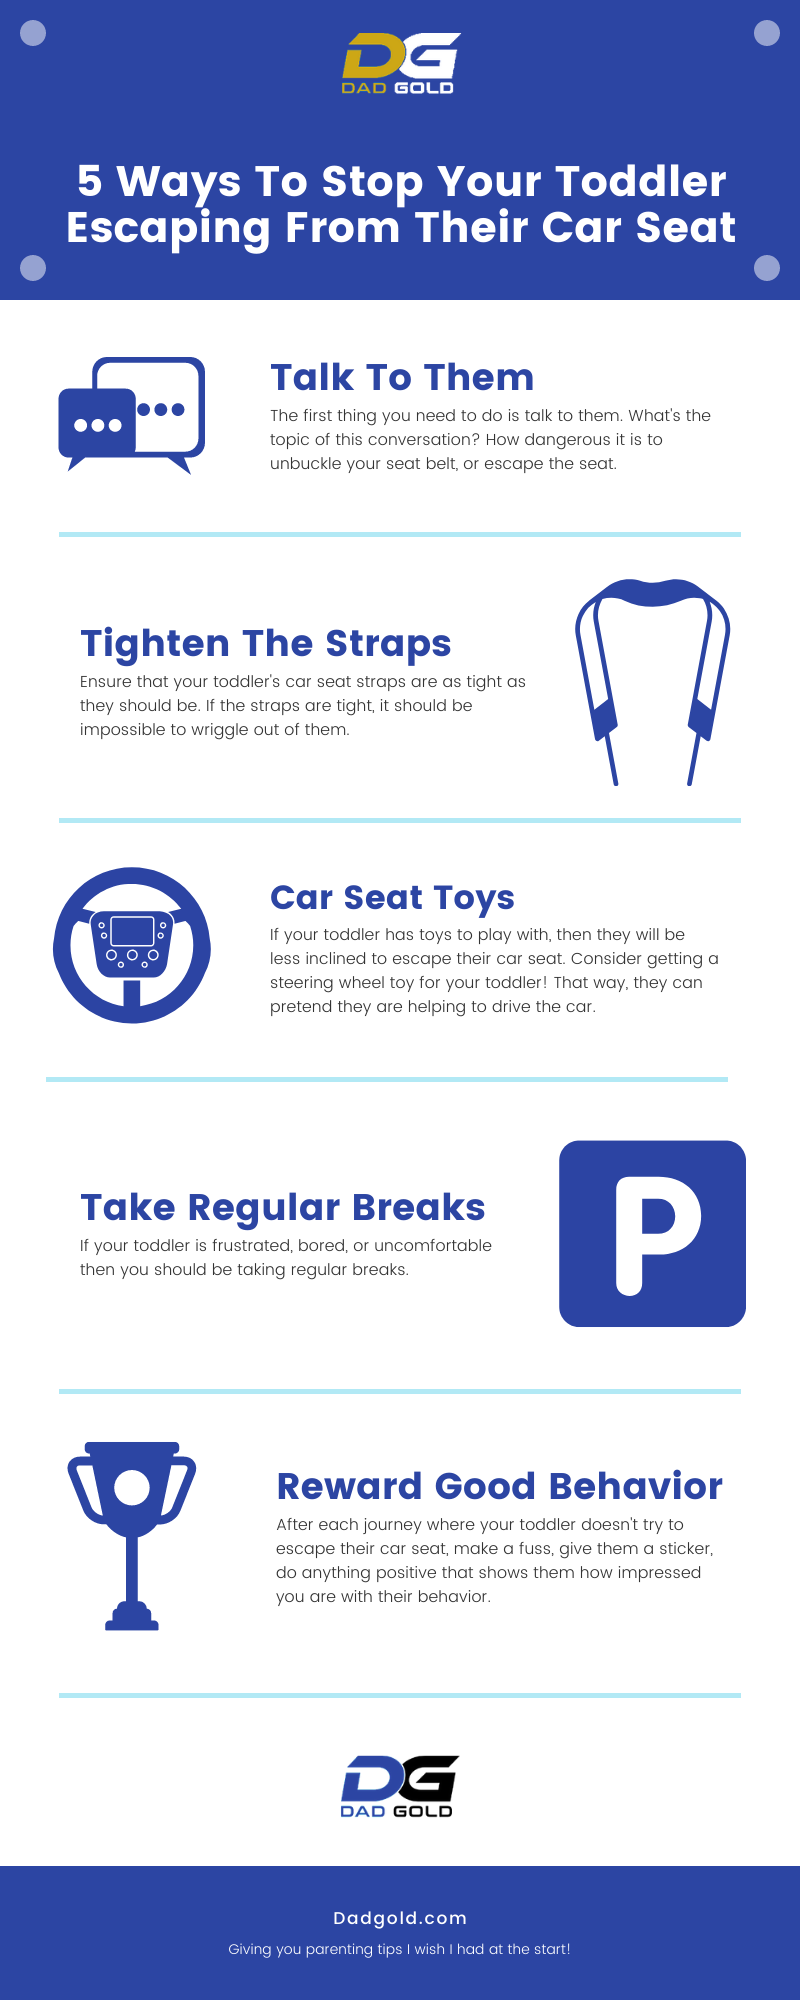 5 Ways To Stop Your Toddler Escaping From Car Seat Infographic